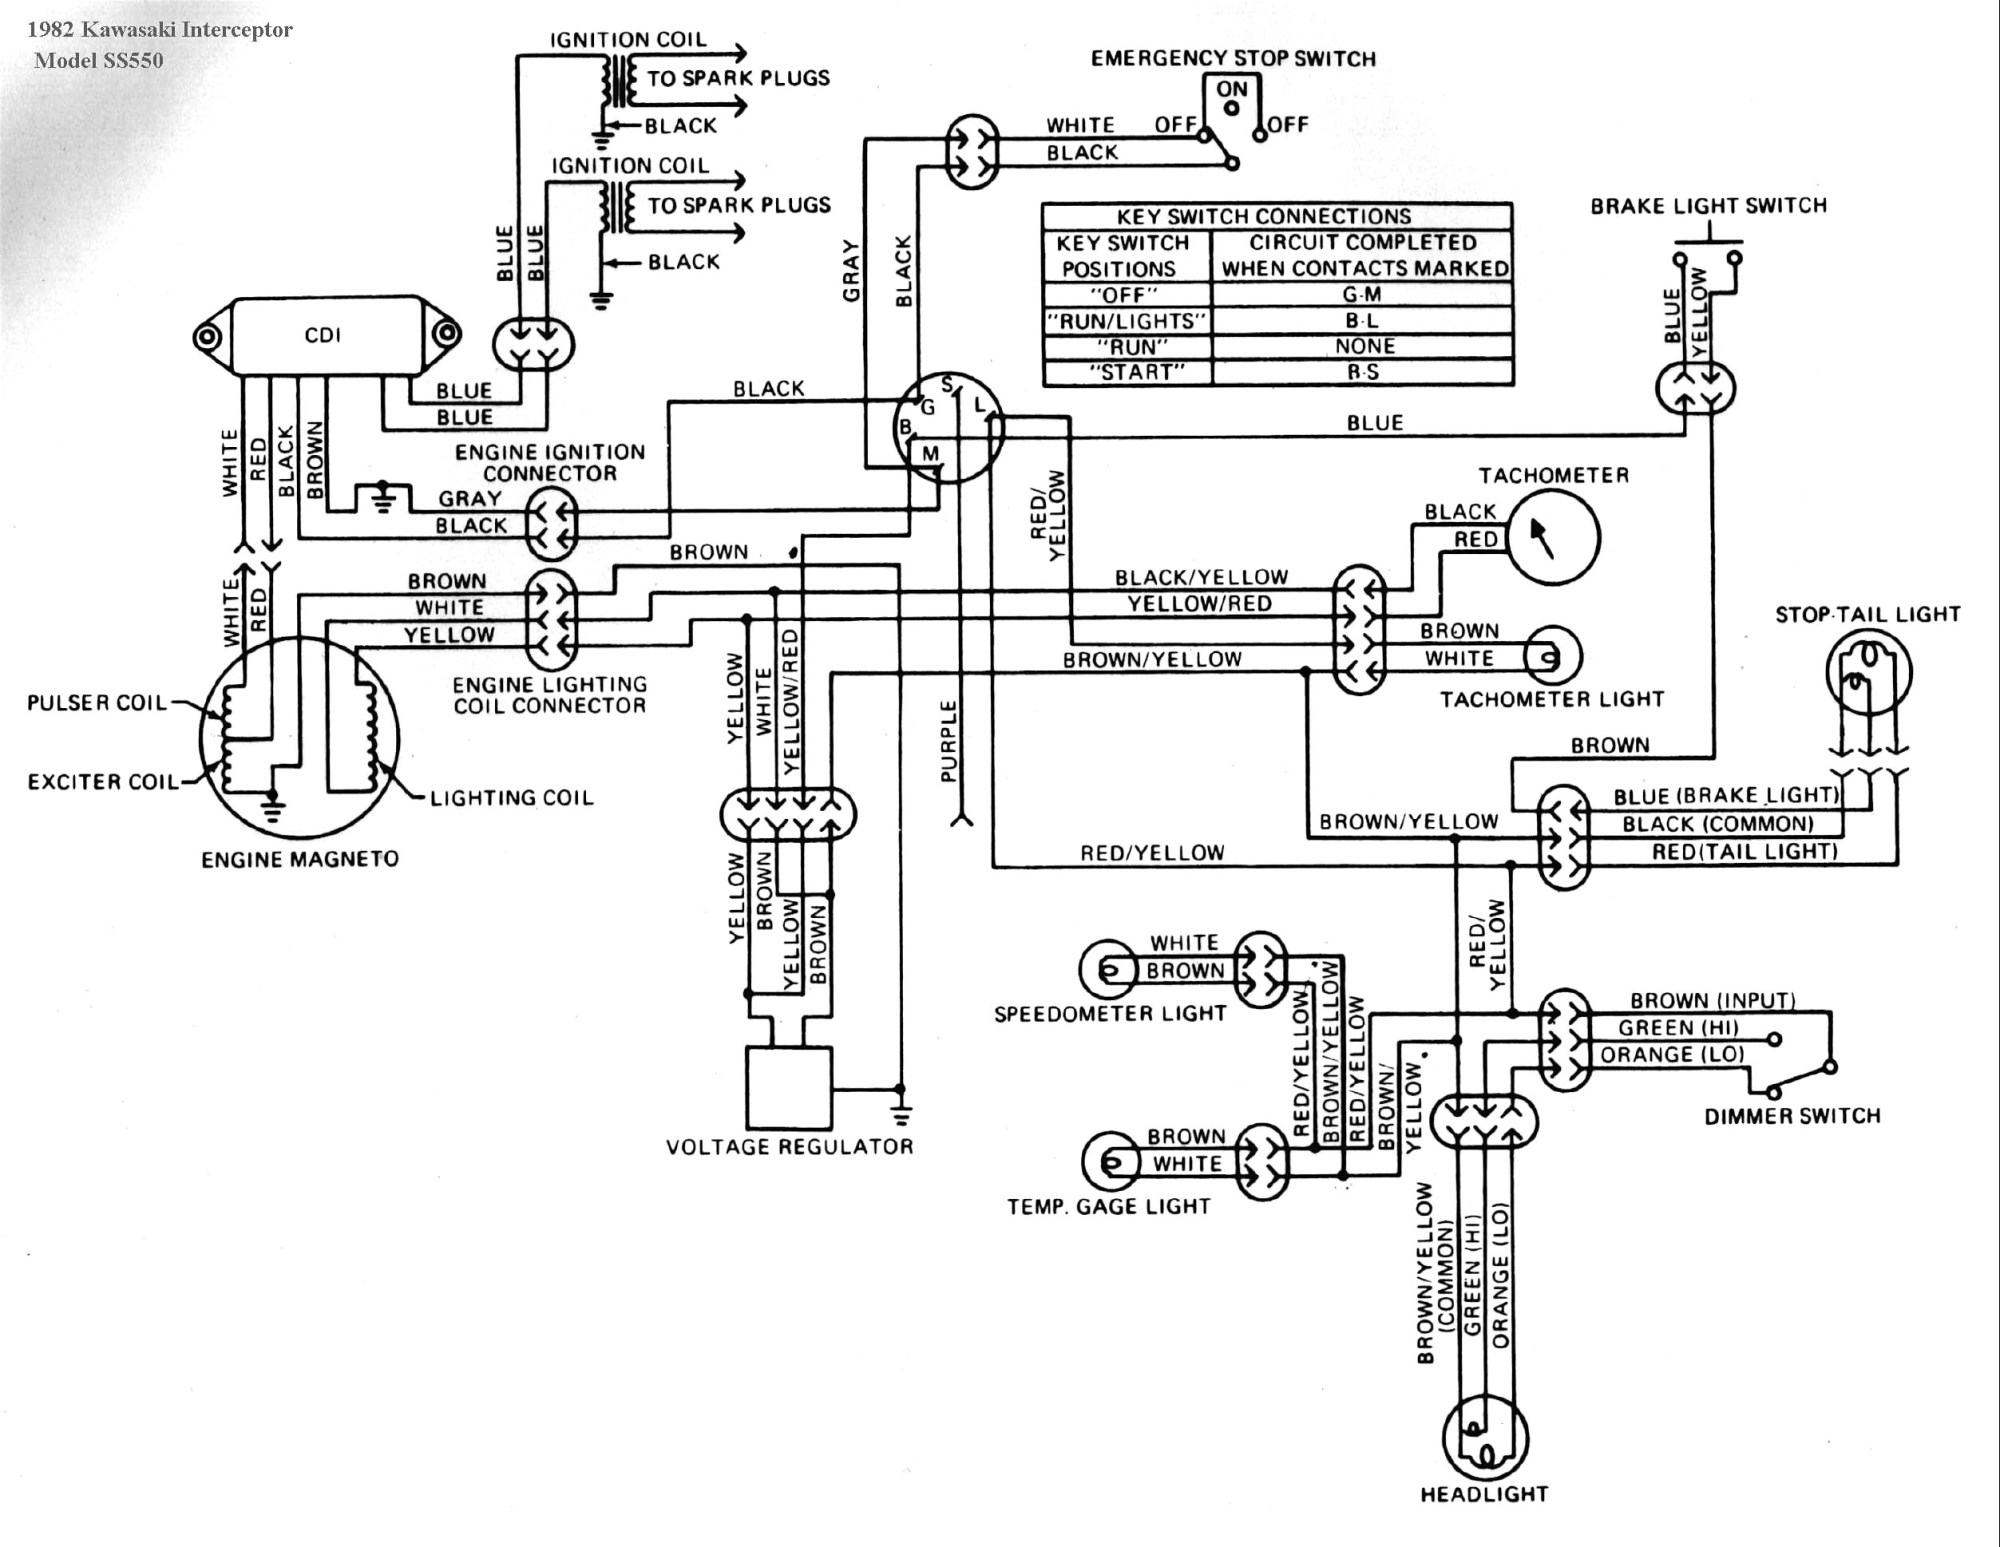 hight resolution of 2006 kawasaki z1000 parts diagram wiring schematic